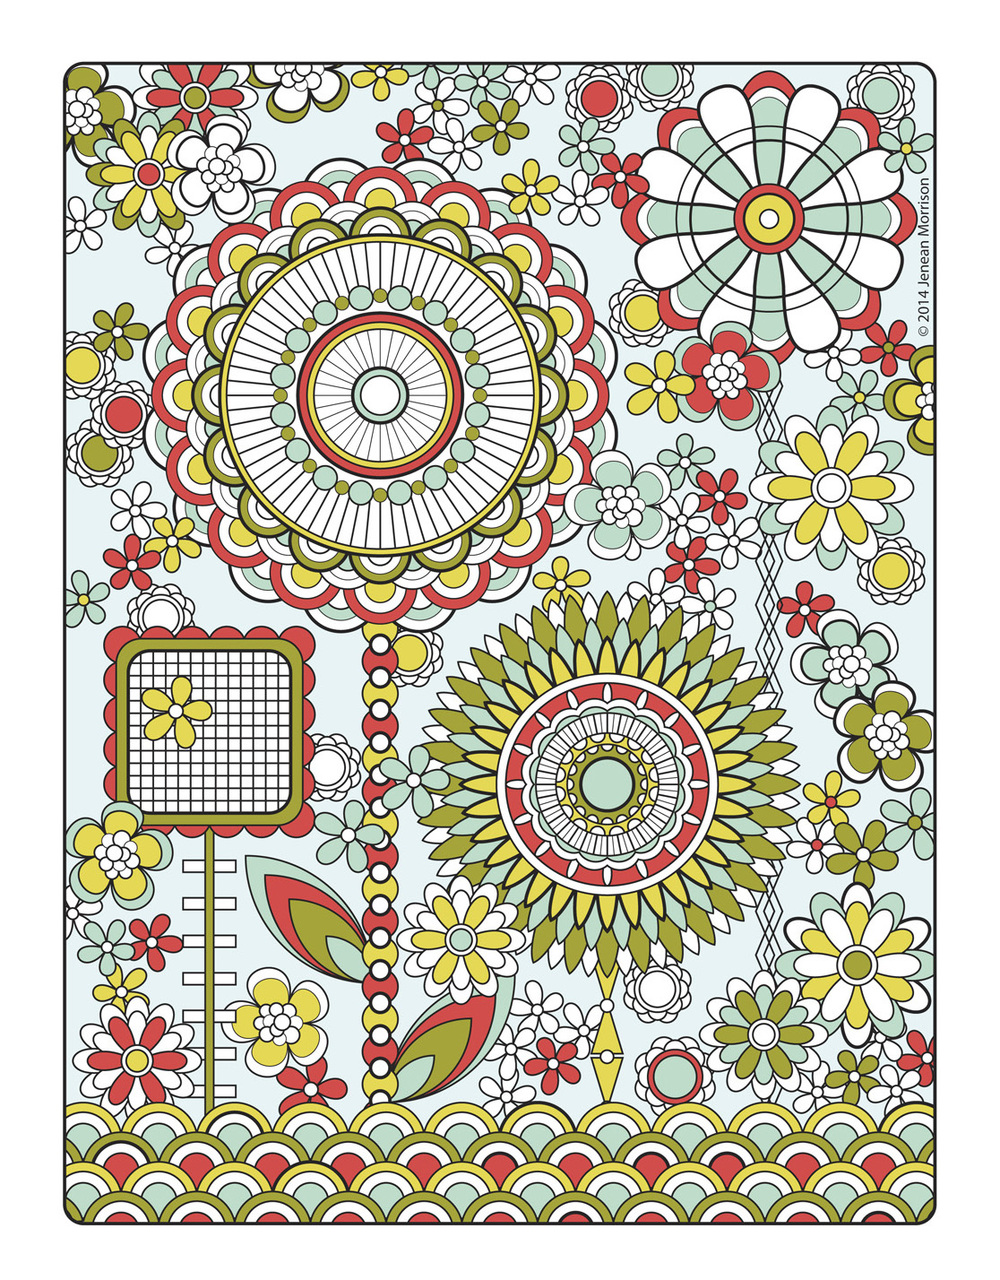 Flower Designs Coloring Book — Jenean Morrison Art & Design